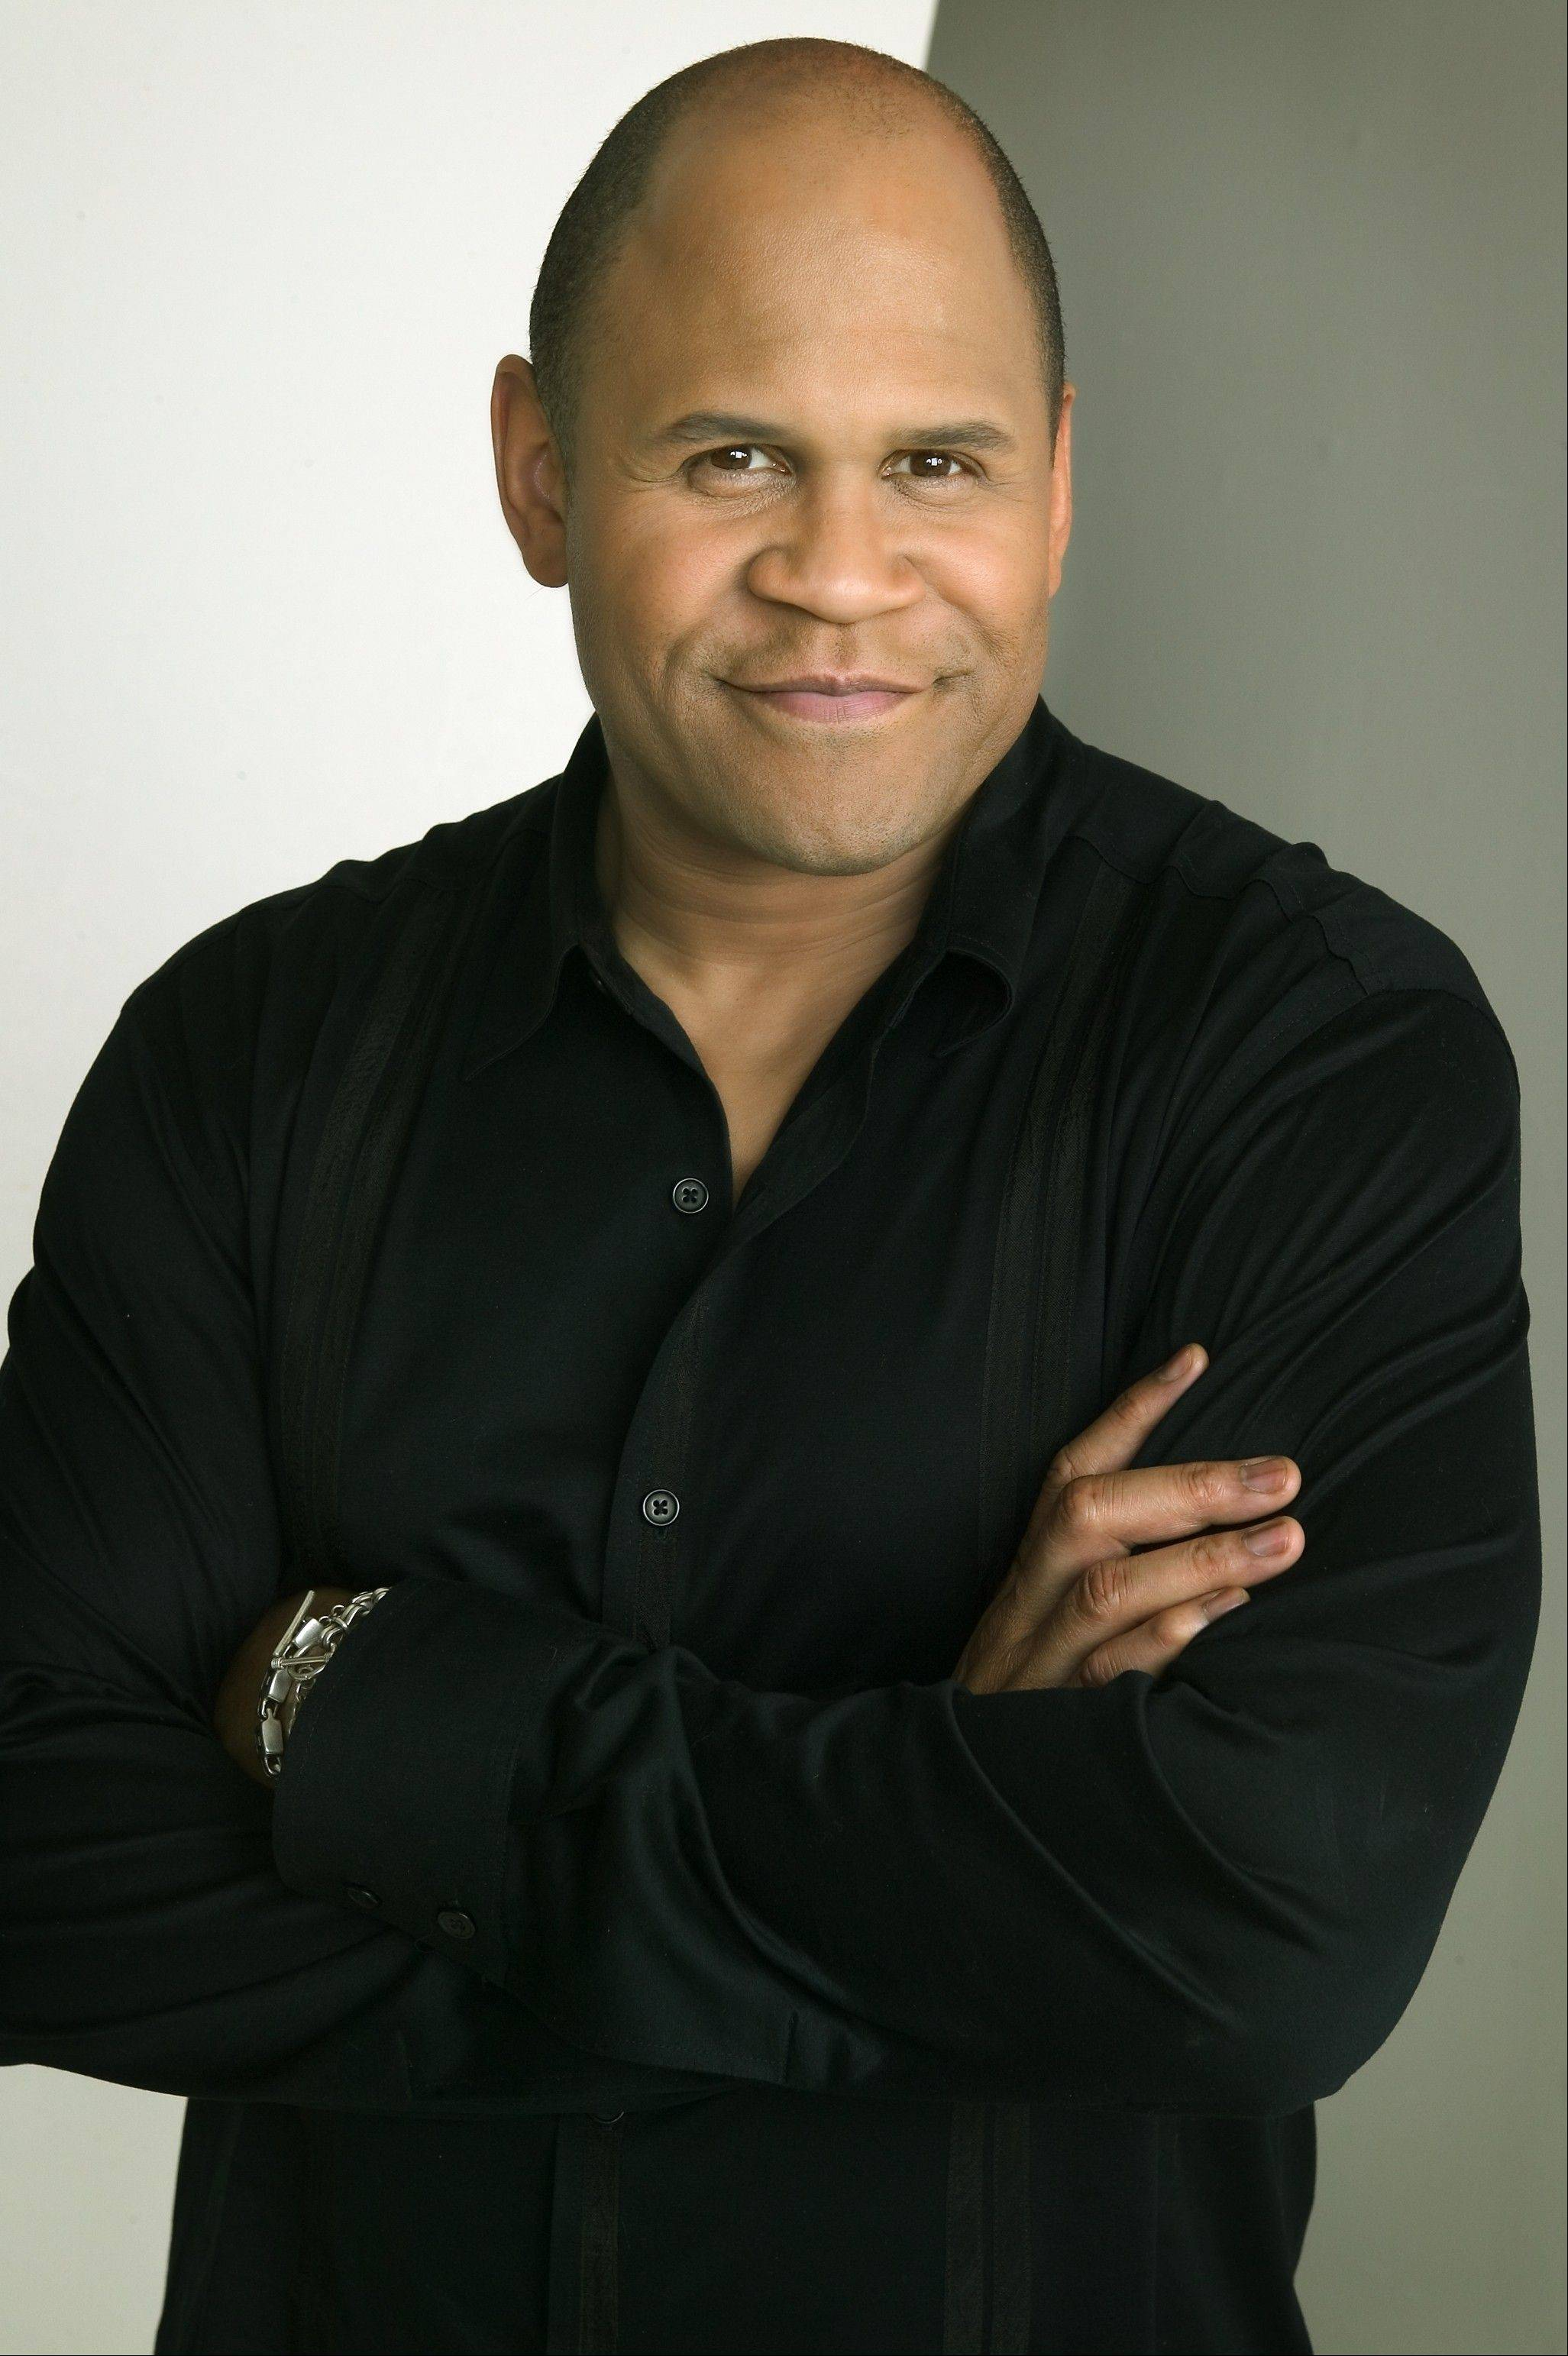 Comedian Rondell Sheridan is set to perform at Zanies locations in St. Charles and Rosemont.